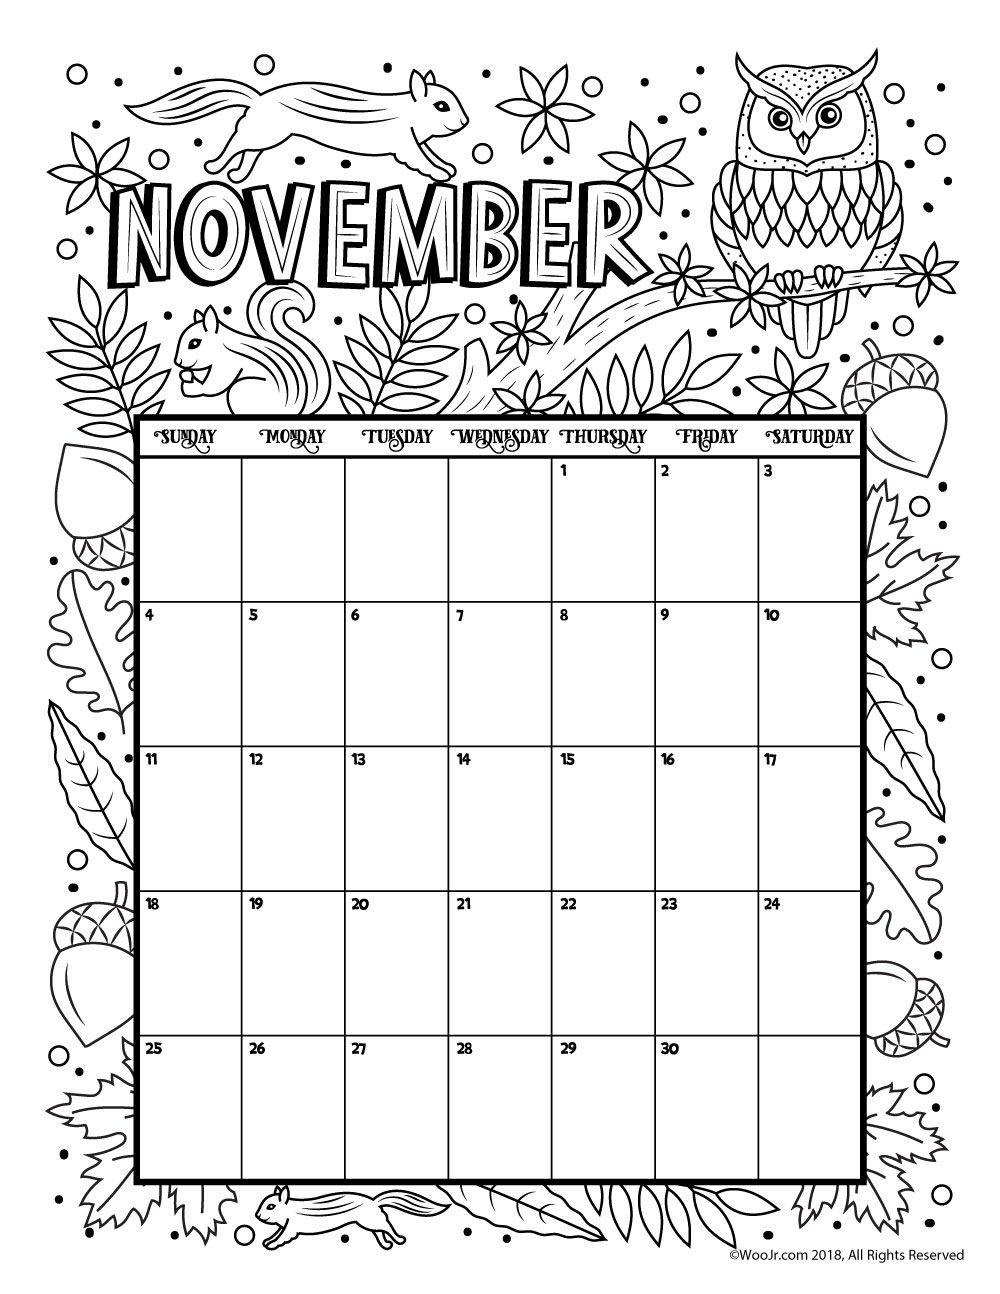 November 2018 Calendar Page Word Excel Template